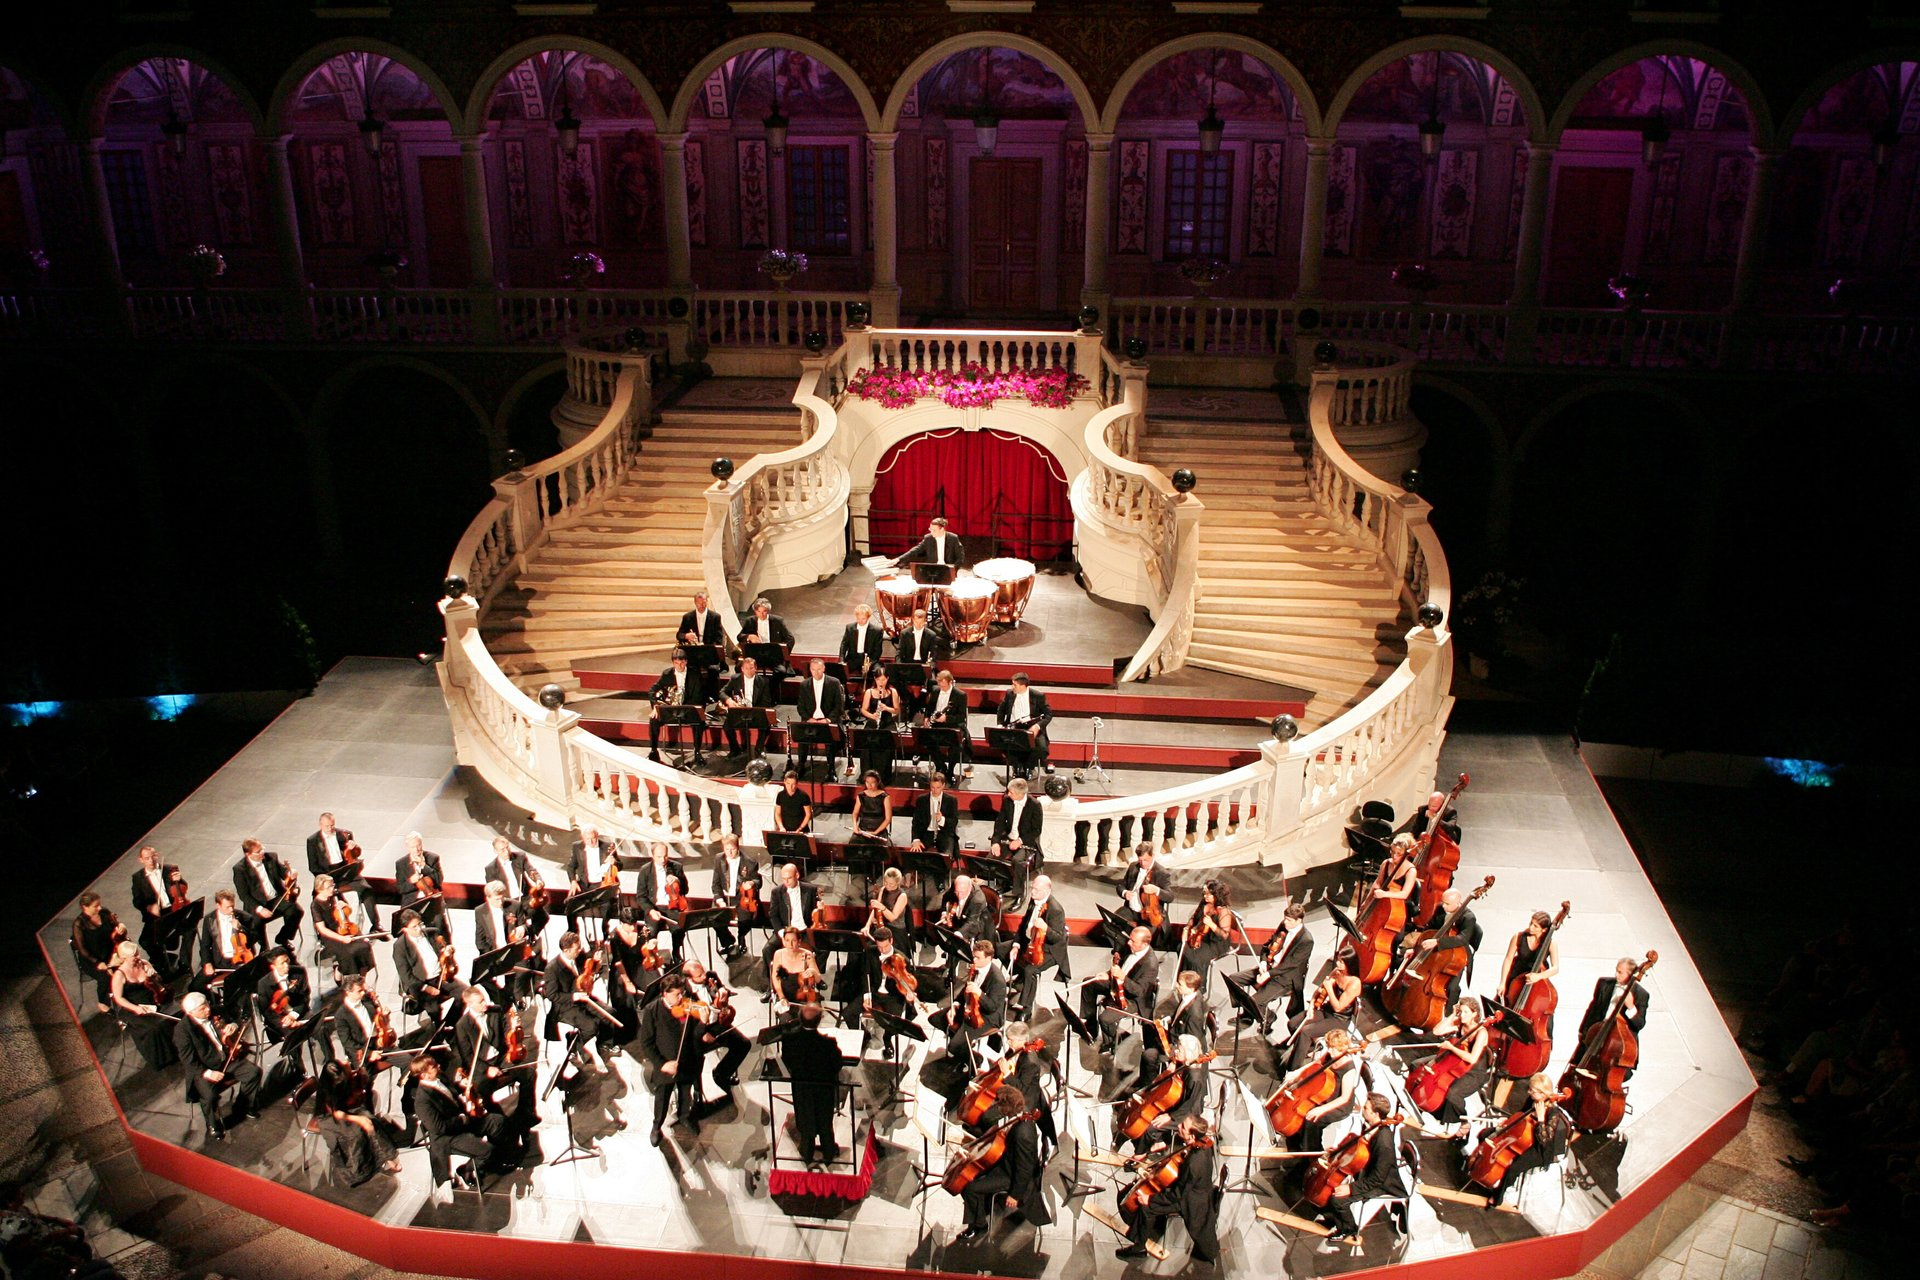 Best time for Concerts at the Prince's Palace in Monaco